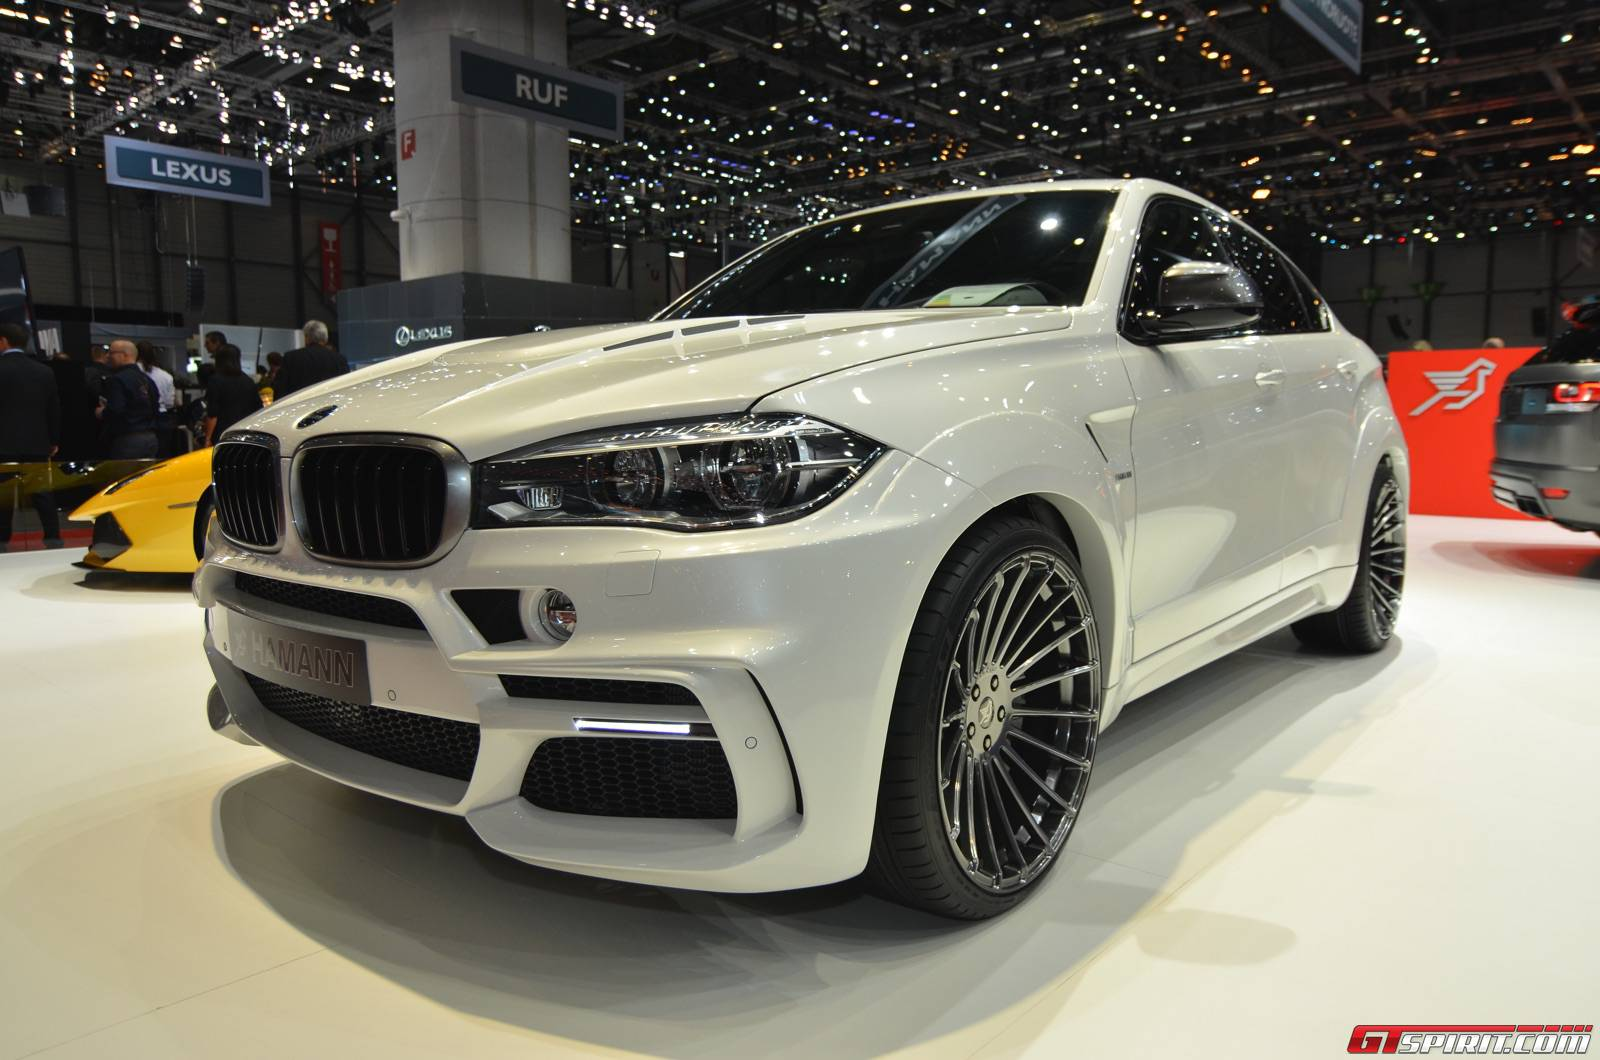 geneva 2015 hamann bmw x6 gtspirit. Black Bedroom Furniture Sets. Home Design Ideas